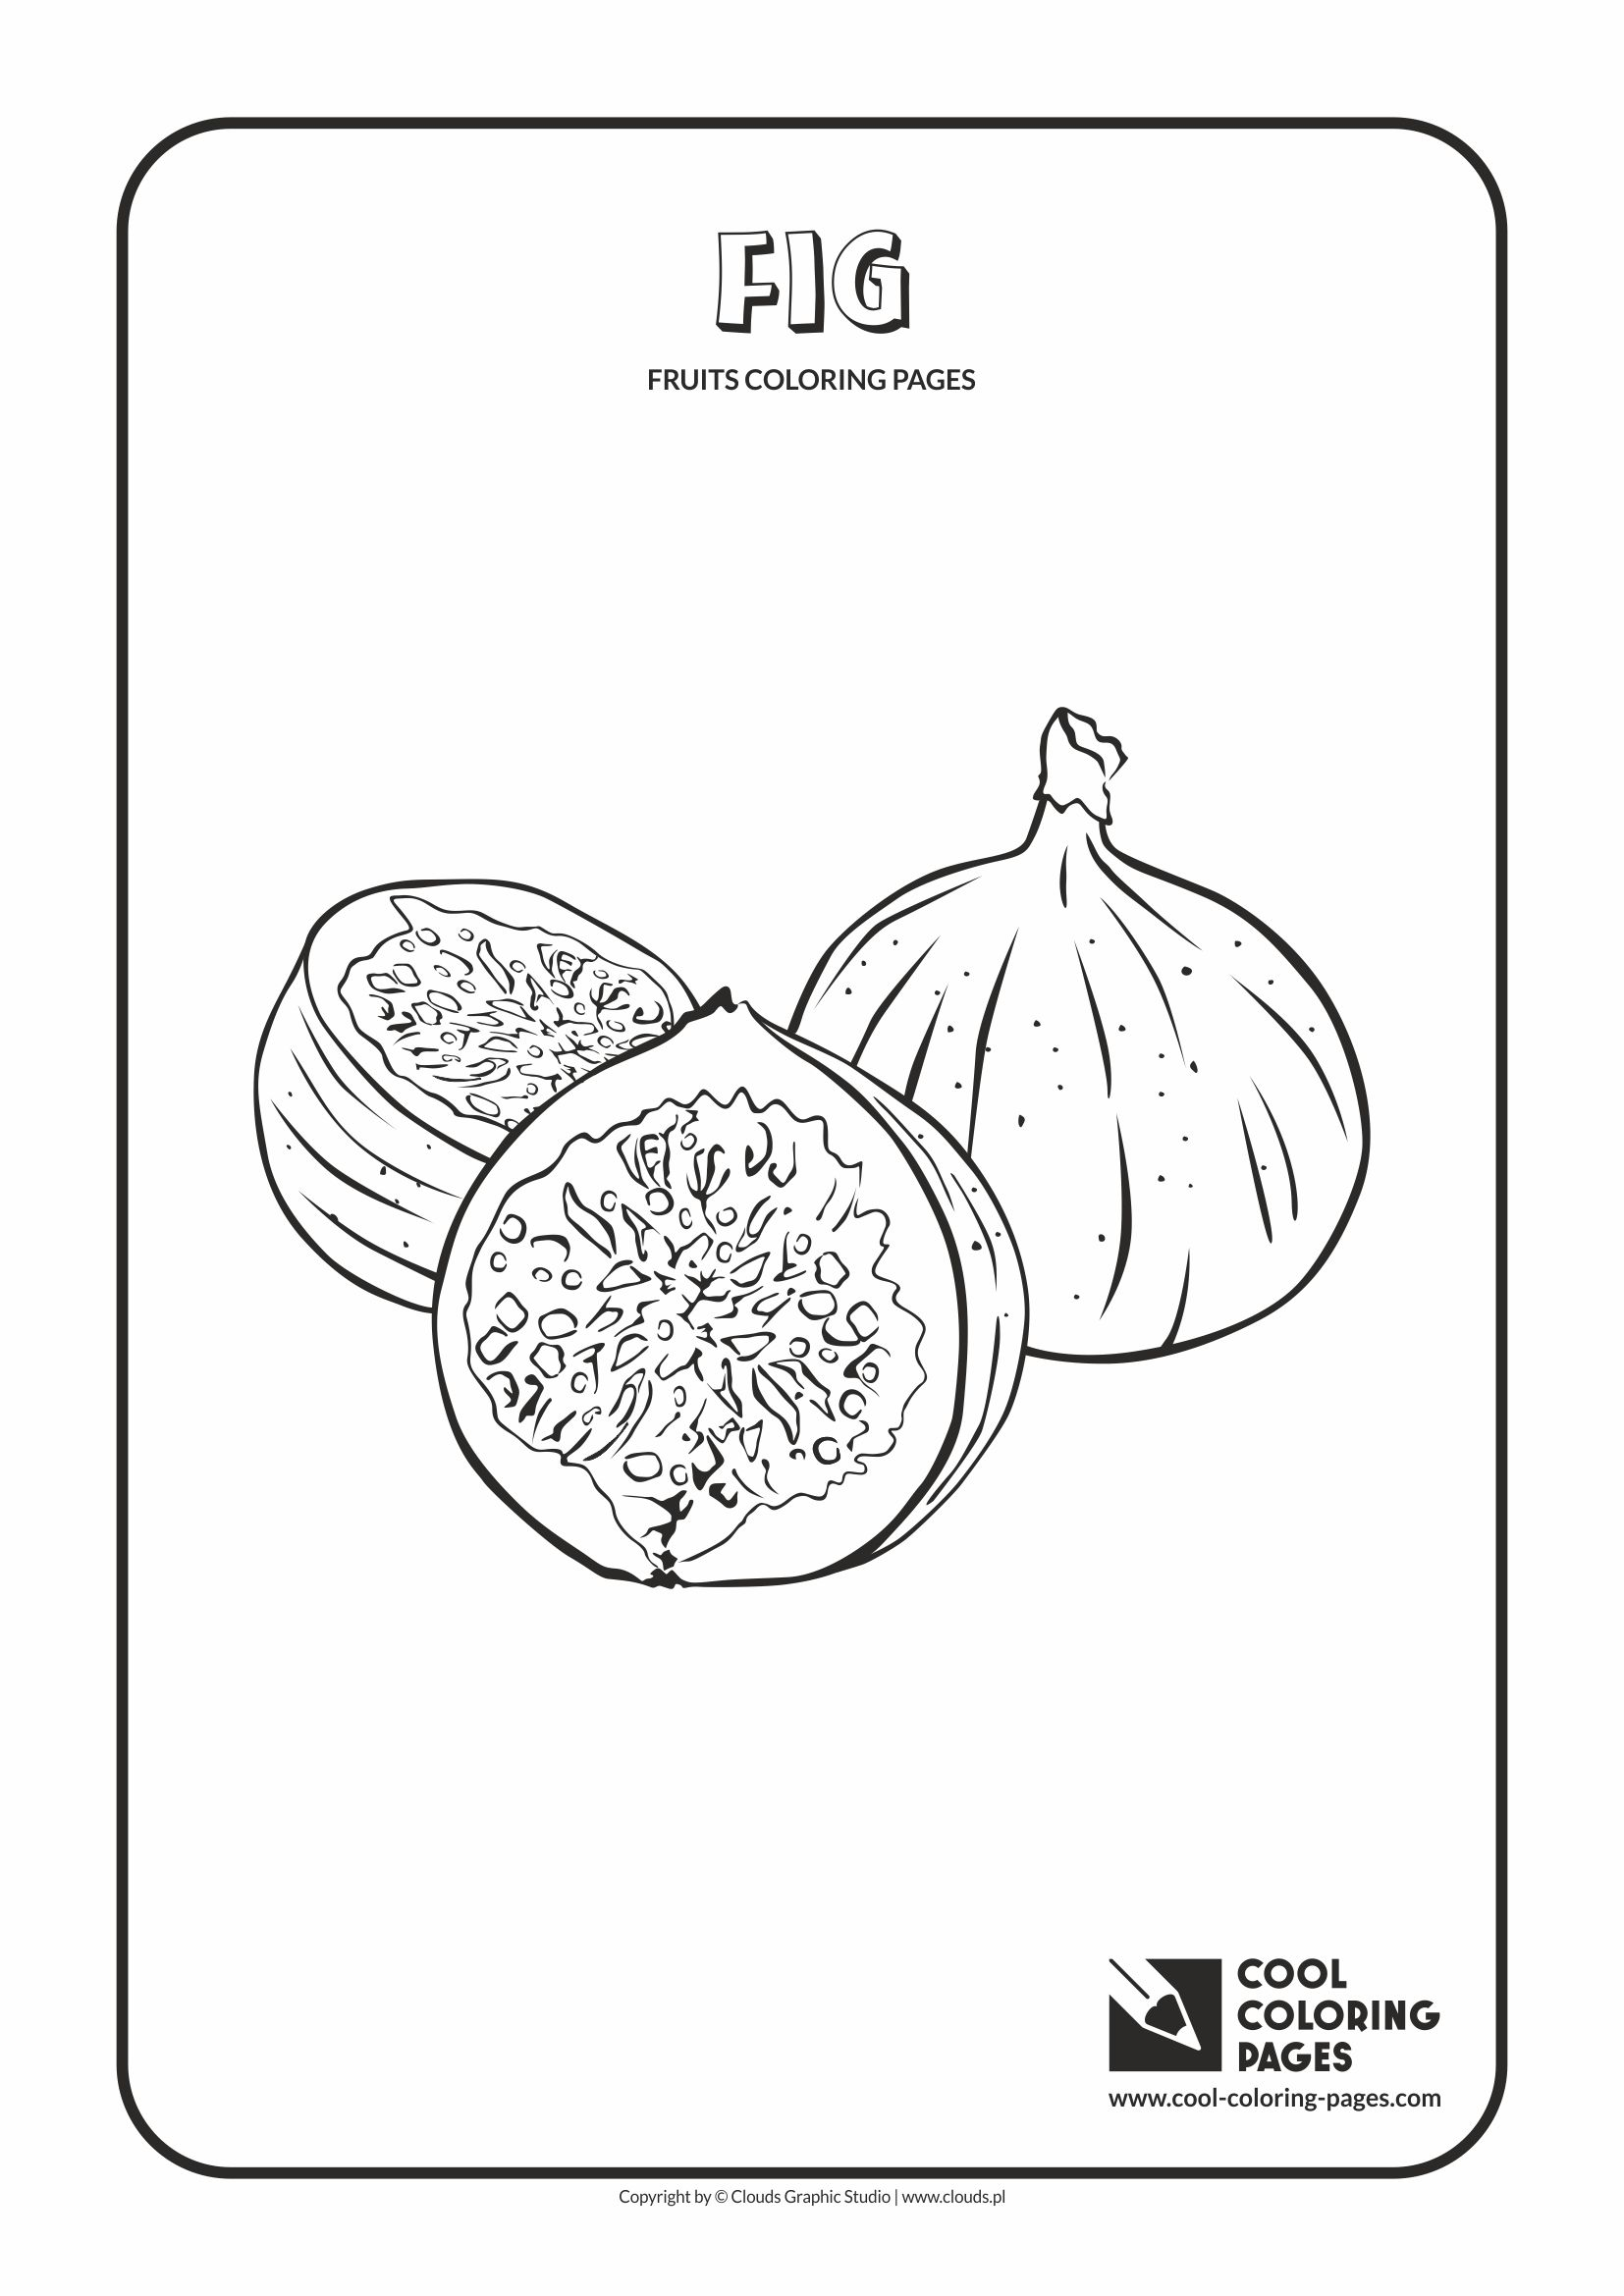 Cool Coloring Pages Fig coloring